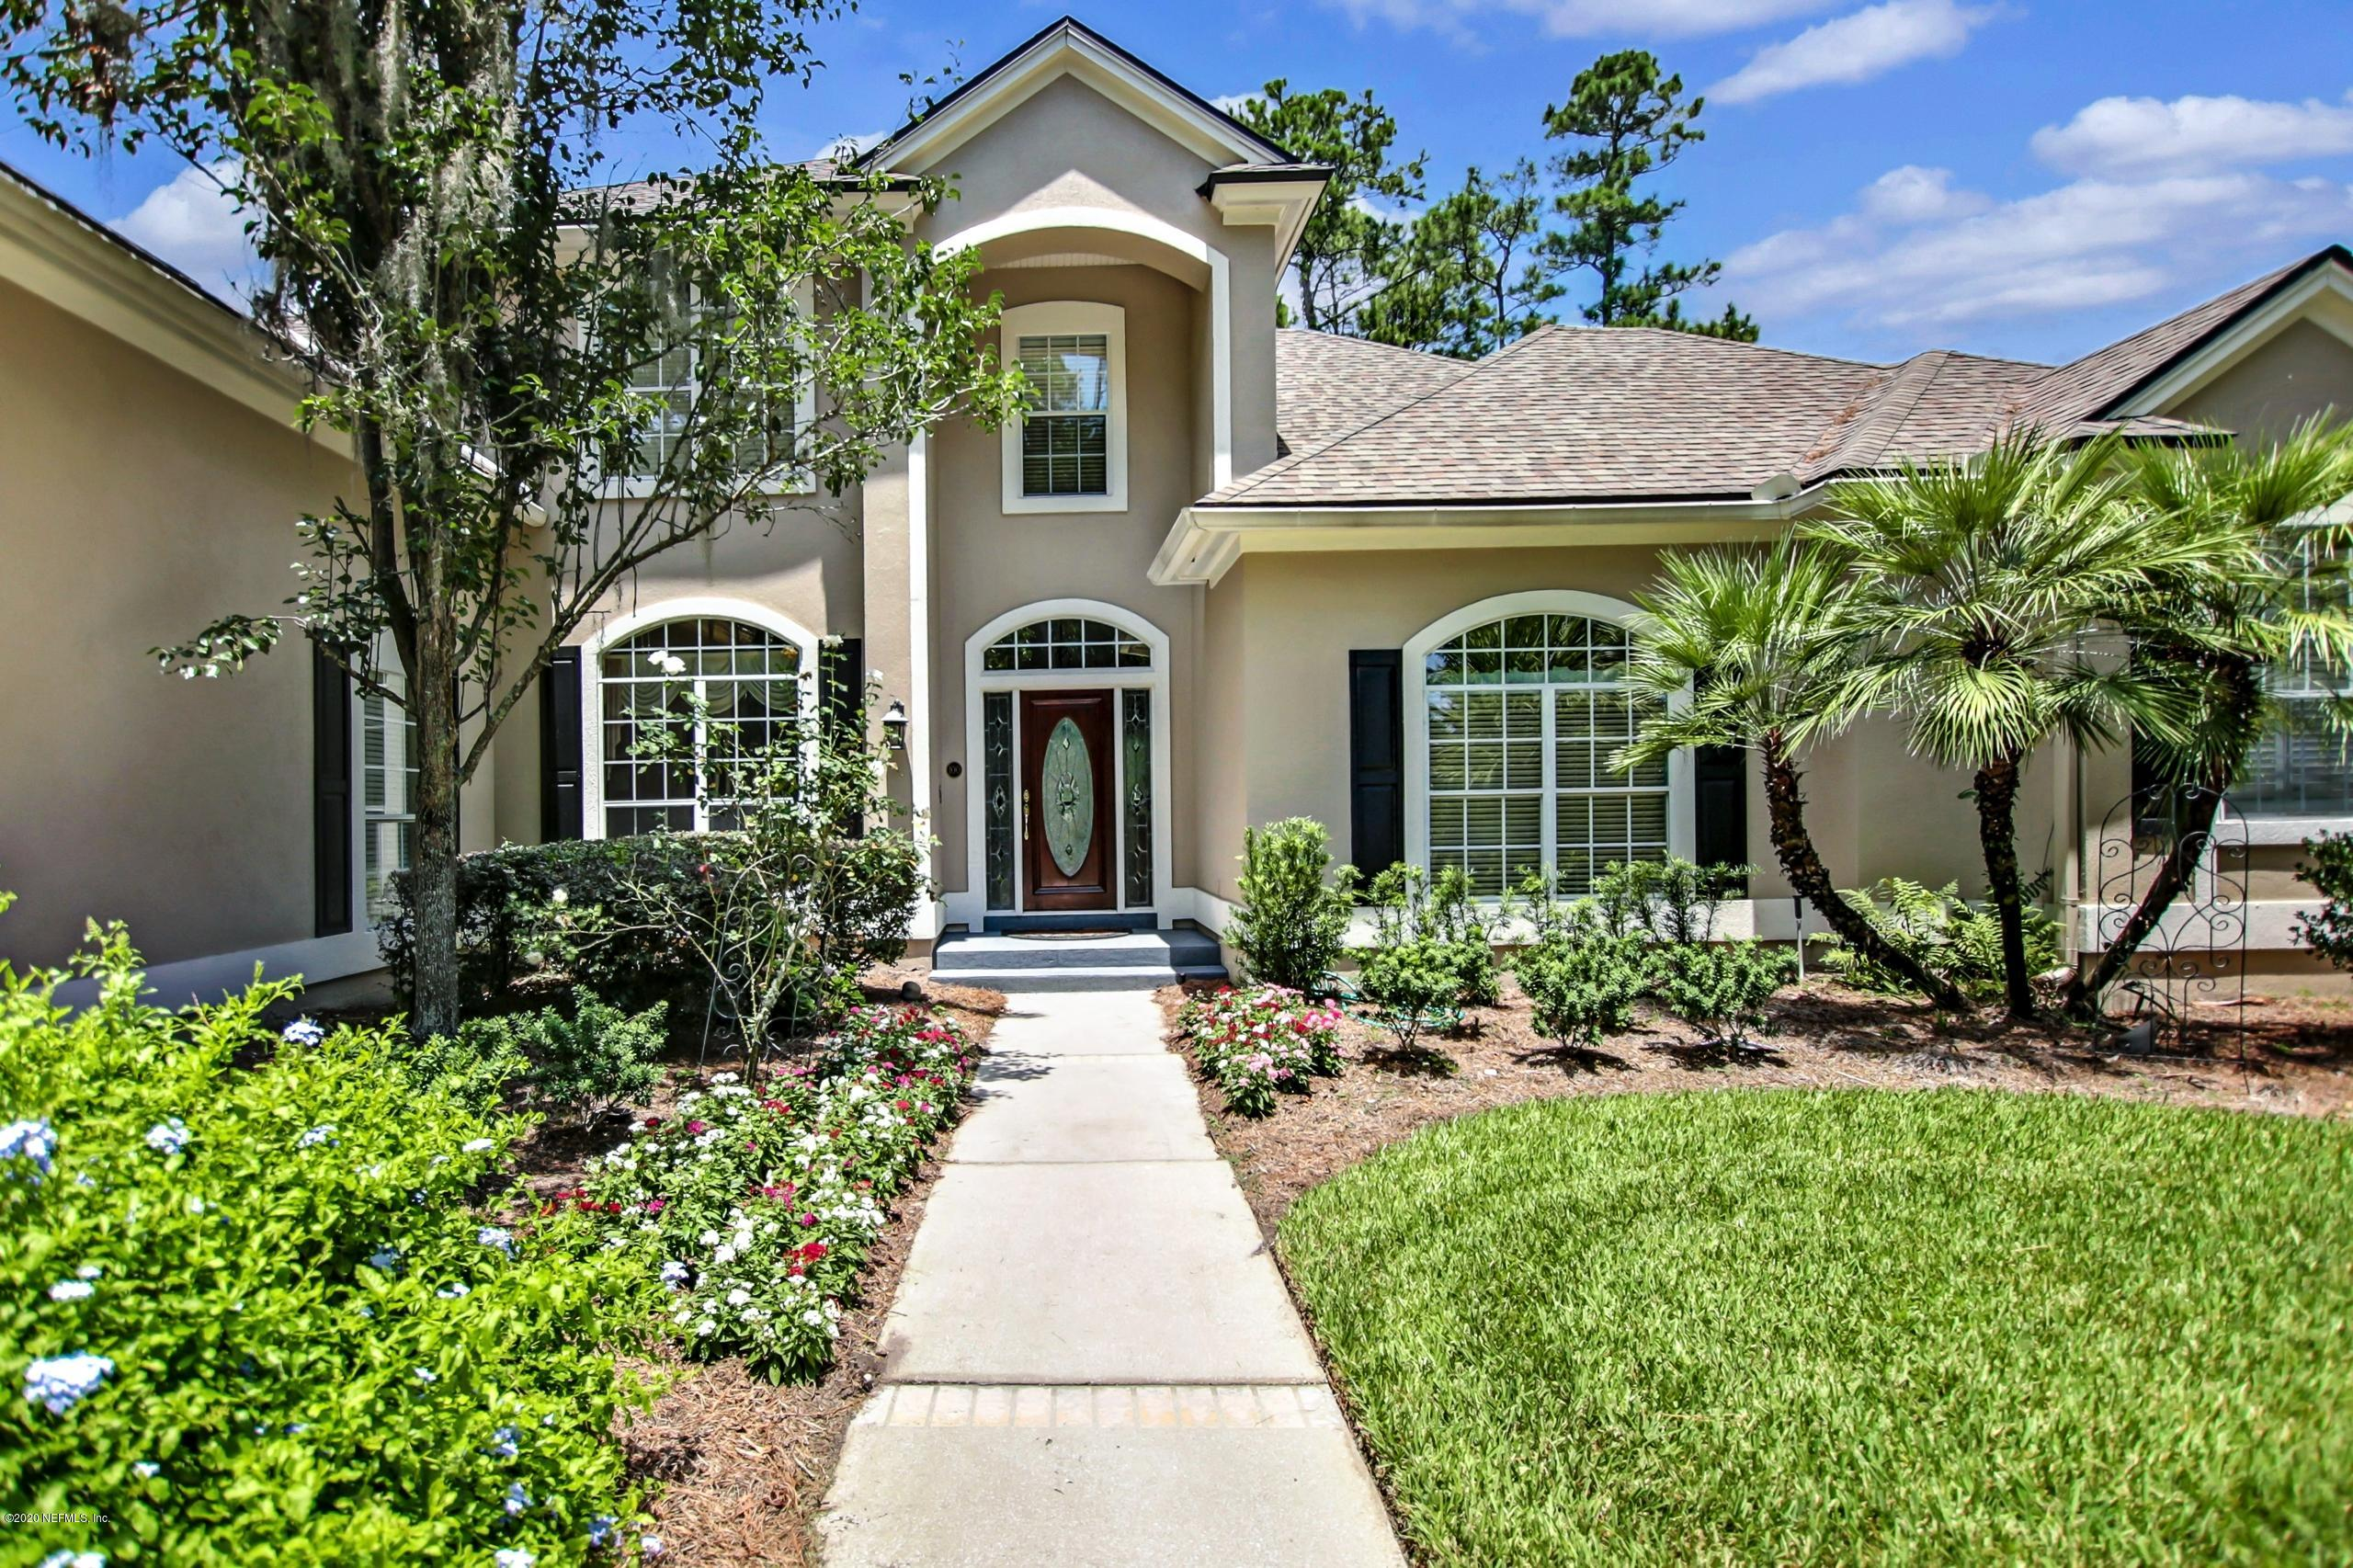 100 TROON POINT, PONTE VEDRA BEACH, FLORIDA 32082, 4 Bedrooms Bedrooms, ,4 BathroomsBathrooms,Residential,For sale,TROON POINT,1061530